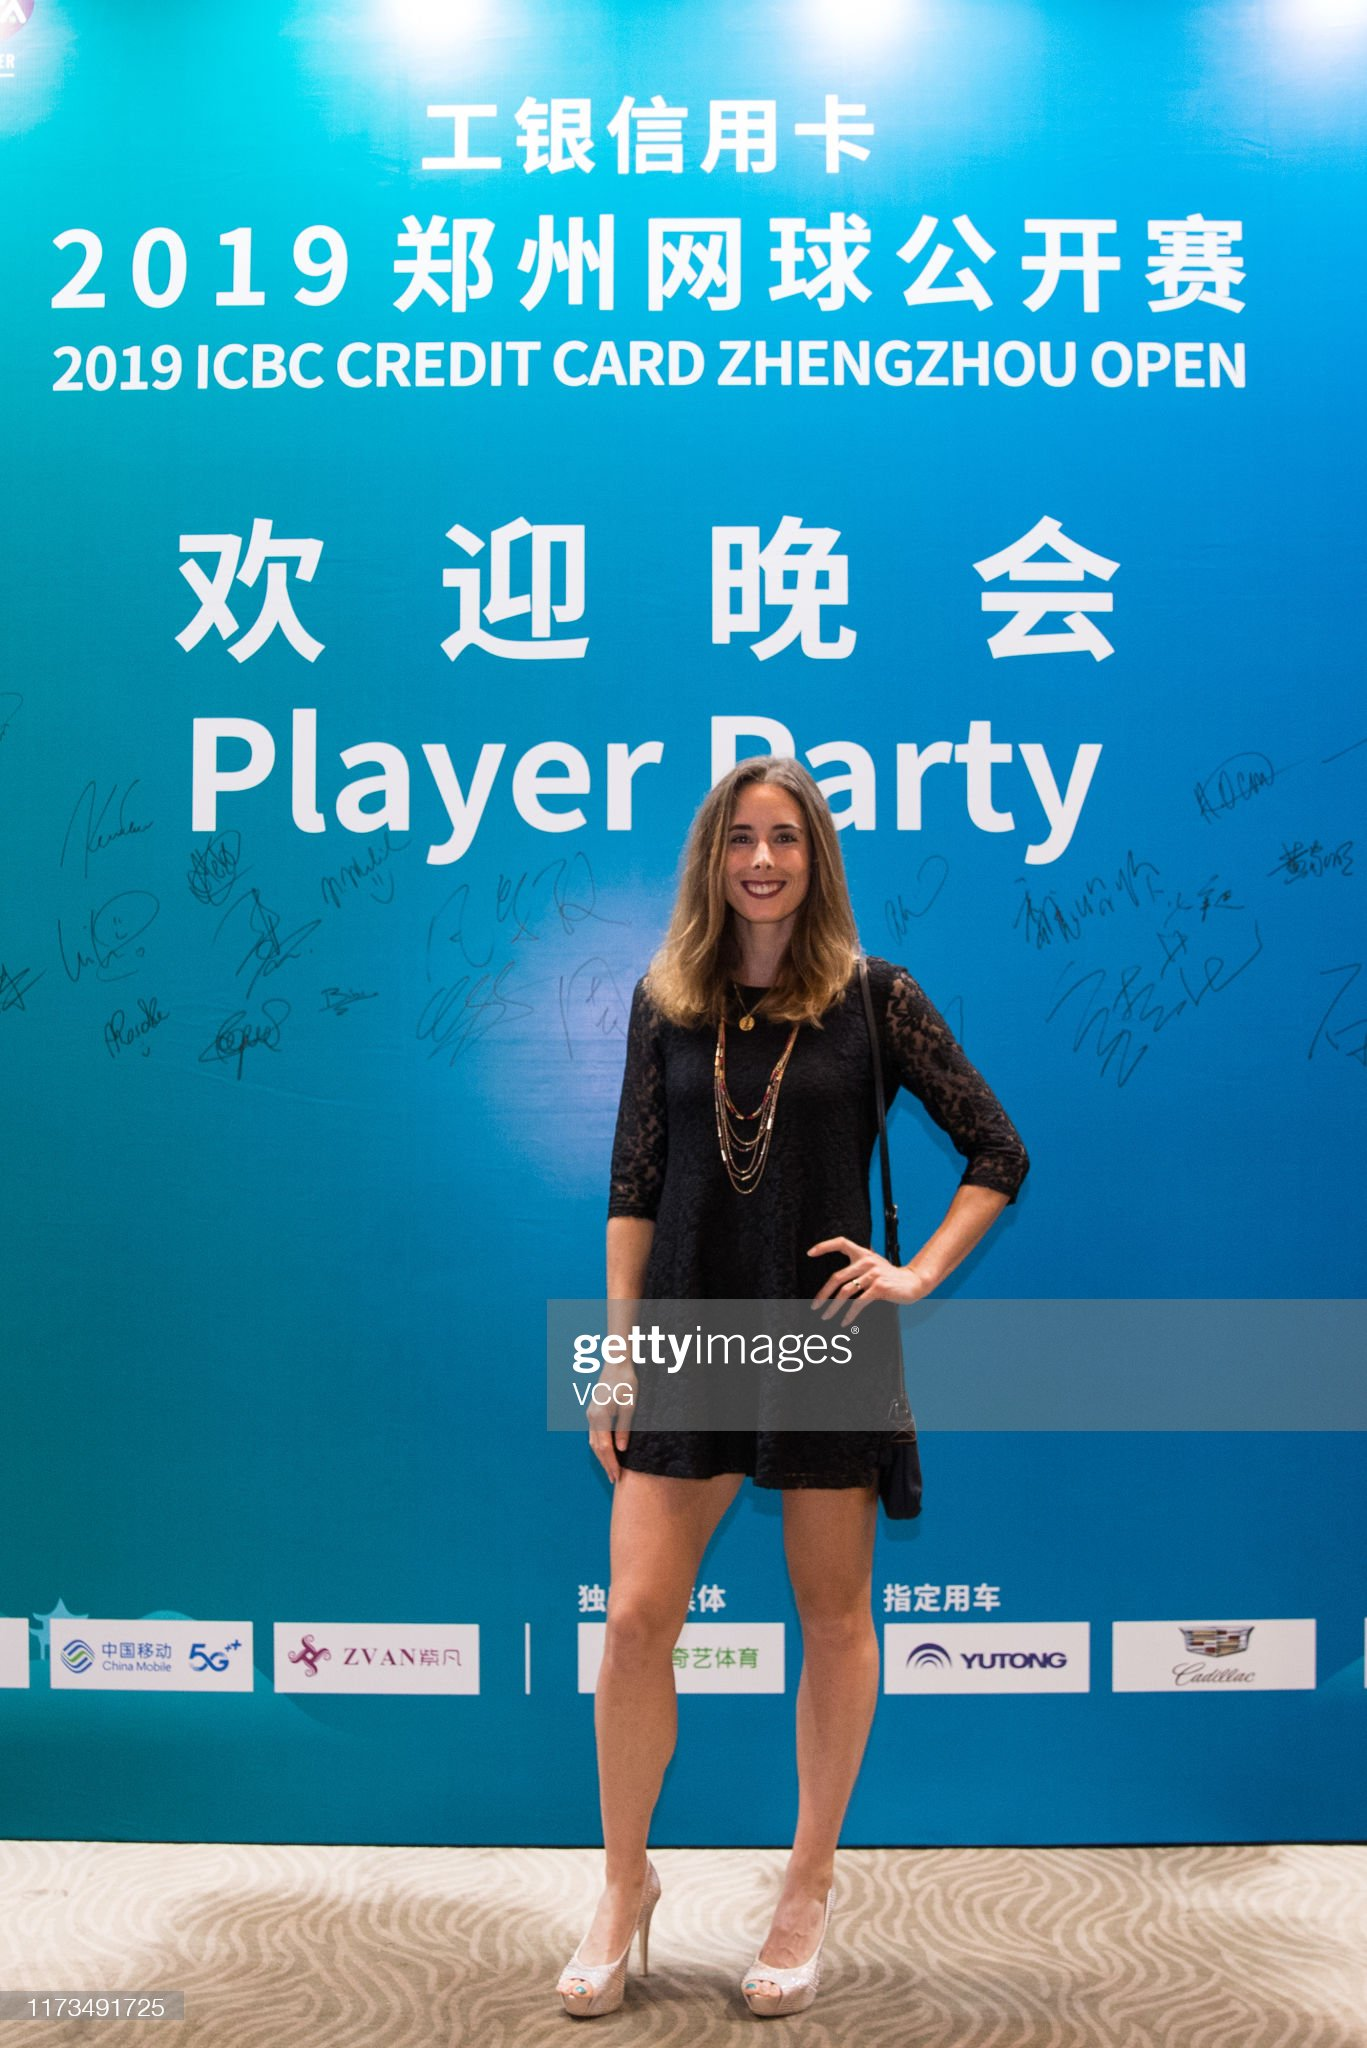 2019 Zhengzhou Women's Tennis Open - Player Party : News Photo